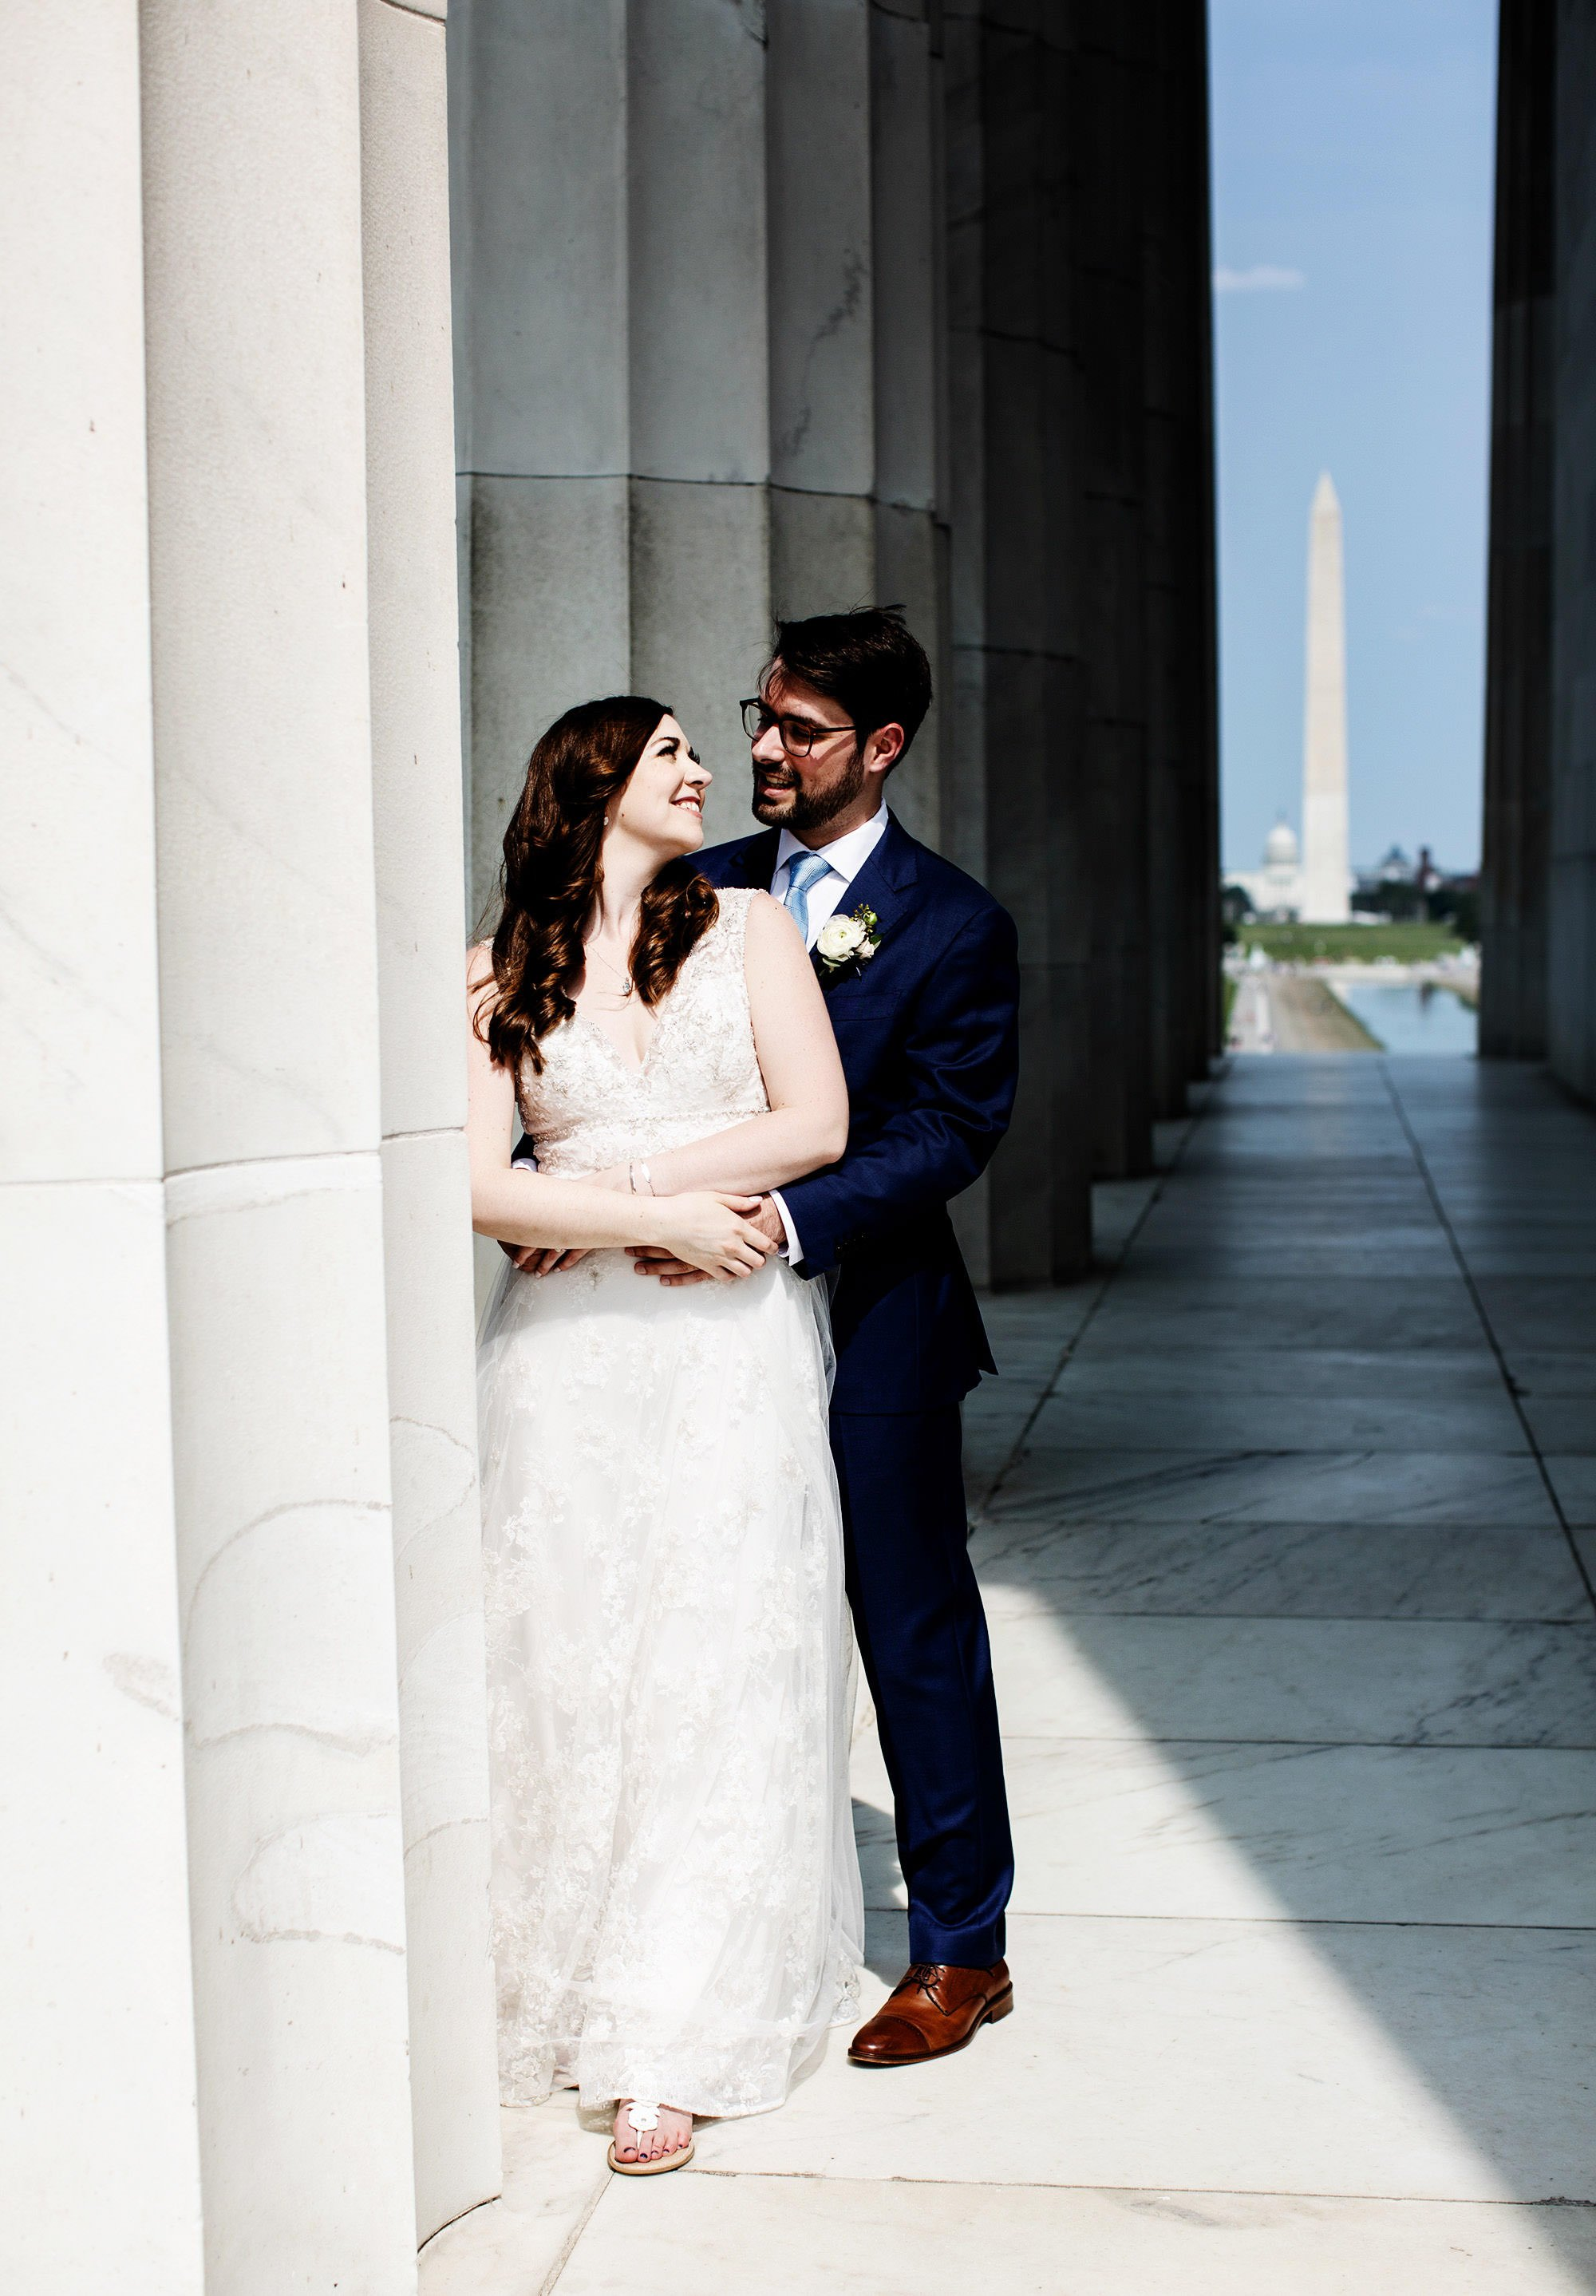 Washington DC Wedding  I  The bride and groom pose for a portrait at the Lincoln Memorial in Washington, DC before their American Institute of Architects Wedding.